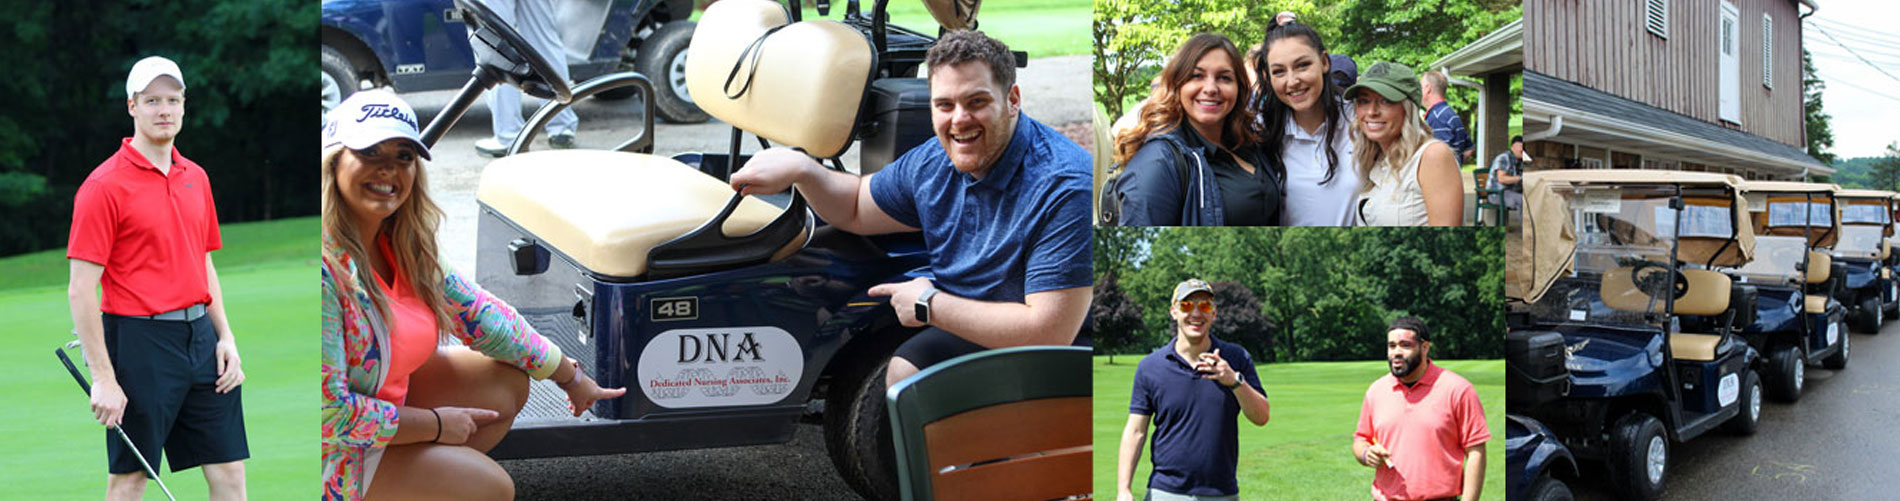 Dedicated Nursing Associates, Inc. (DNA) Holds 4th Annual Charity Golf Outing at Meadowink Golf Course